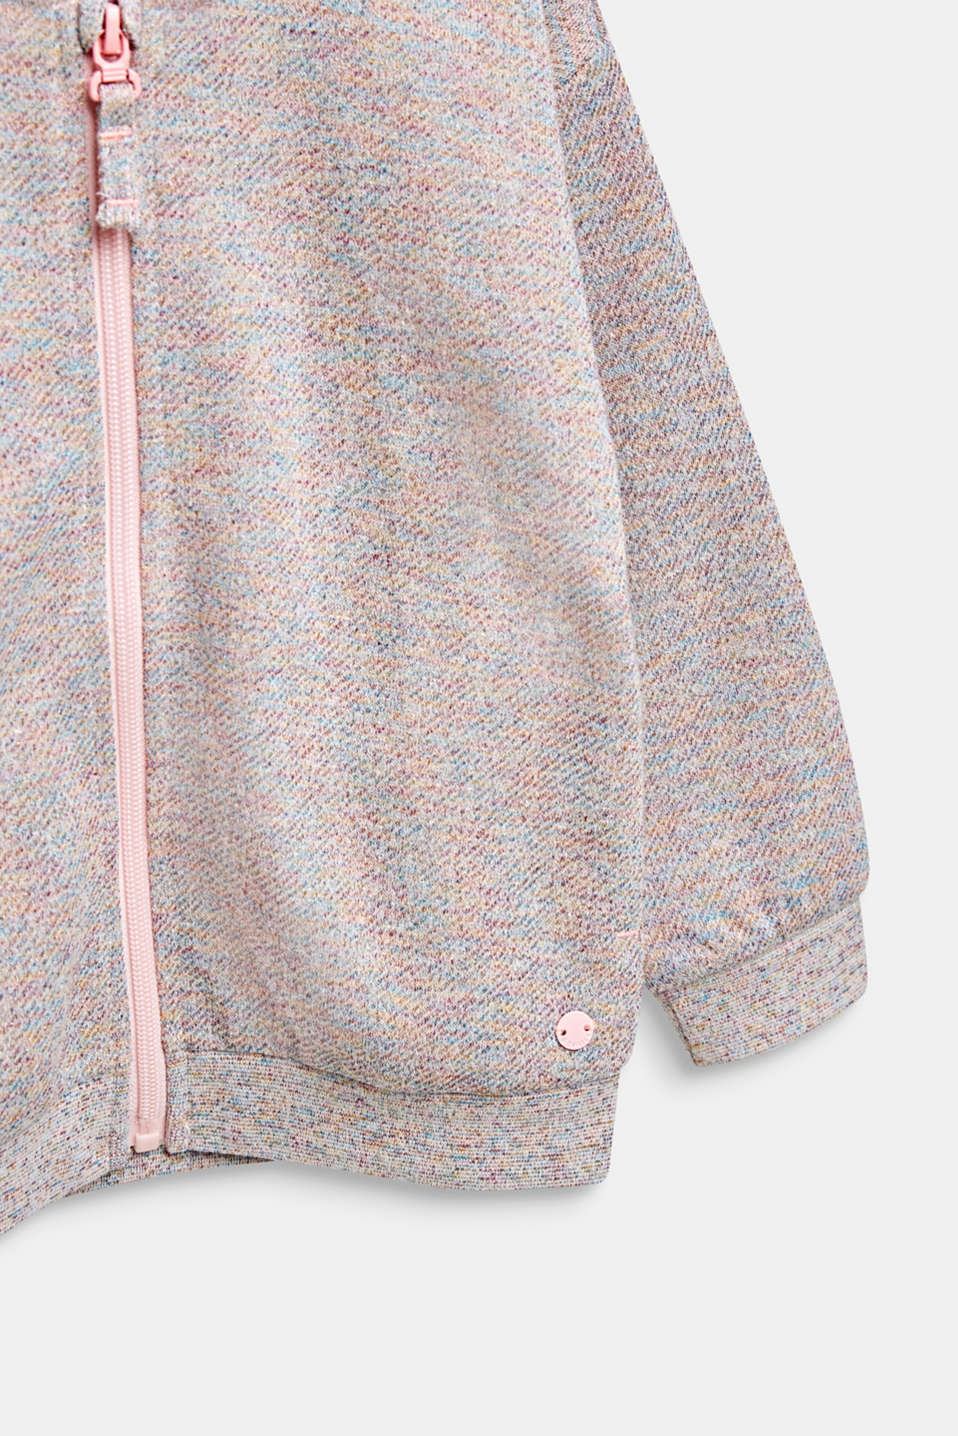 Sweatshirt cardigan with a colourful glitter look, MULTICOLOR, detail image number 2